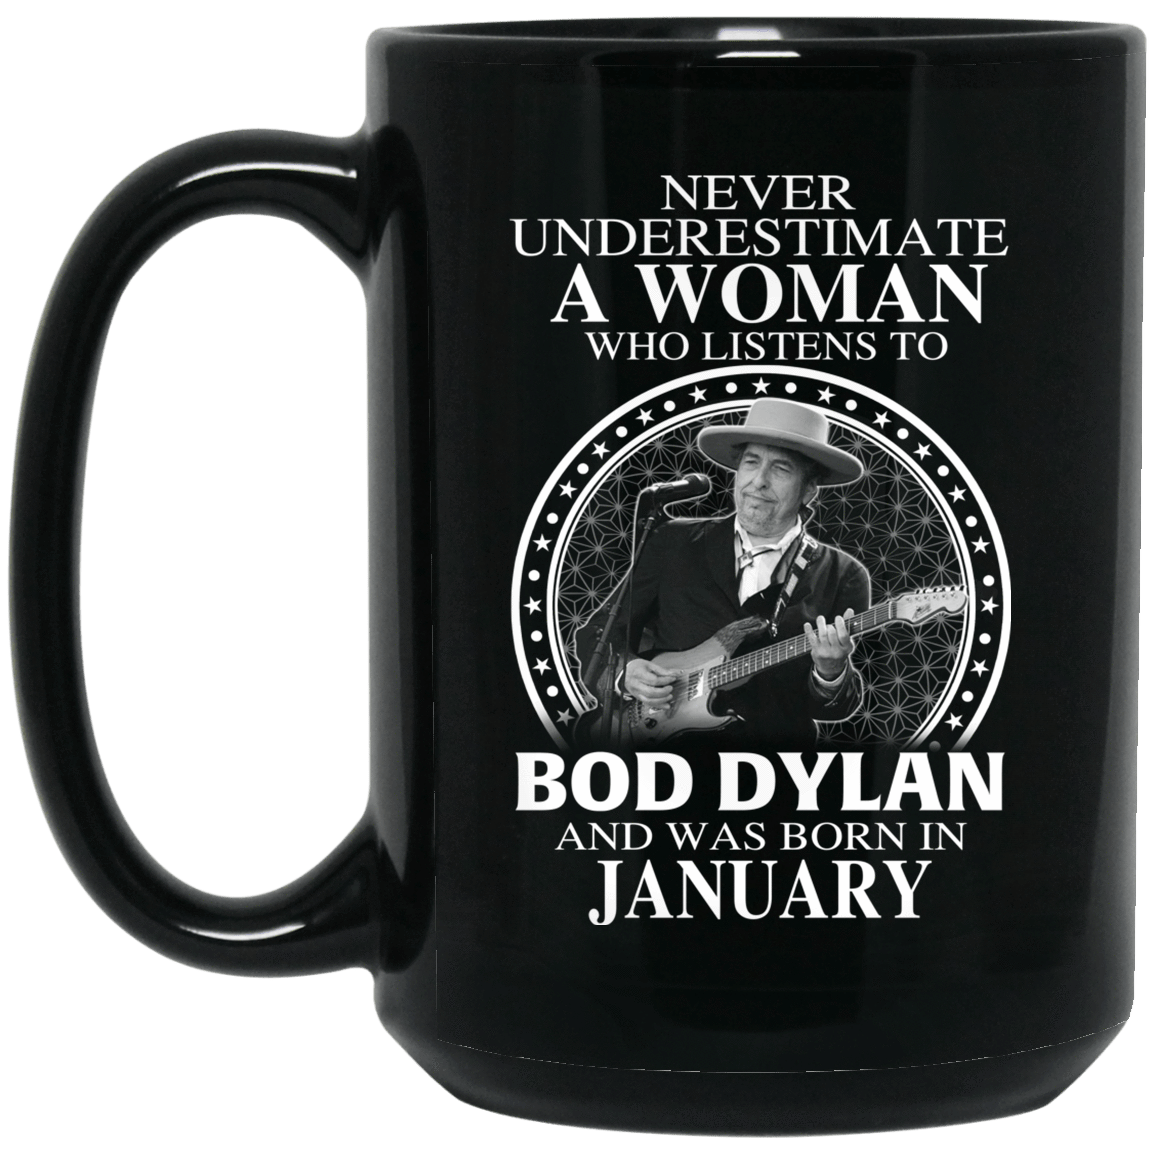 A Woman Who Listens To Bob Dylan And Was Born In January Mug 1066-10182-76154526-49311 - Tee Ript